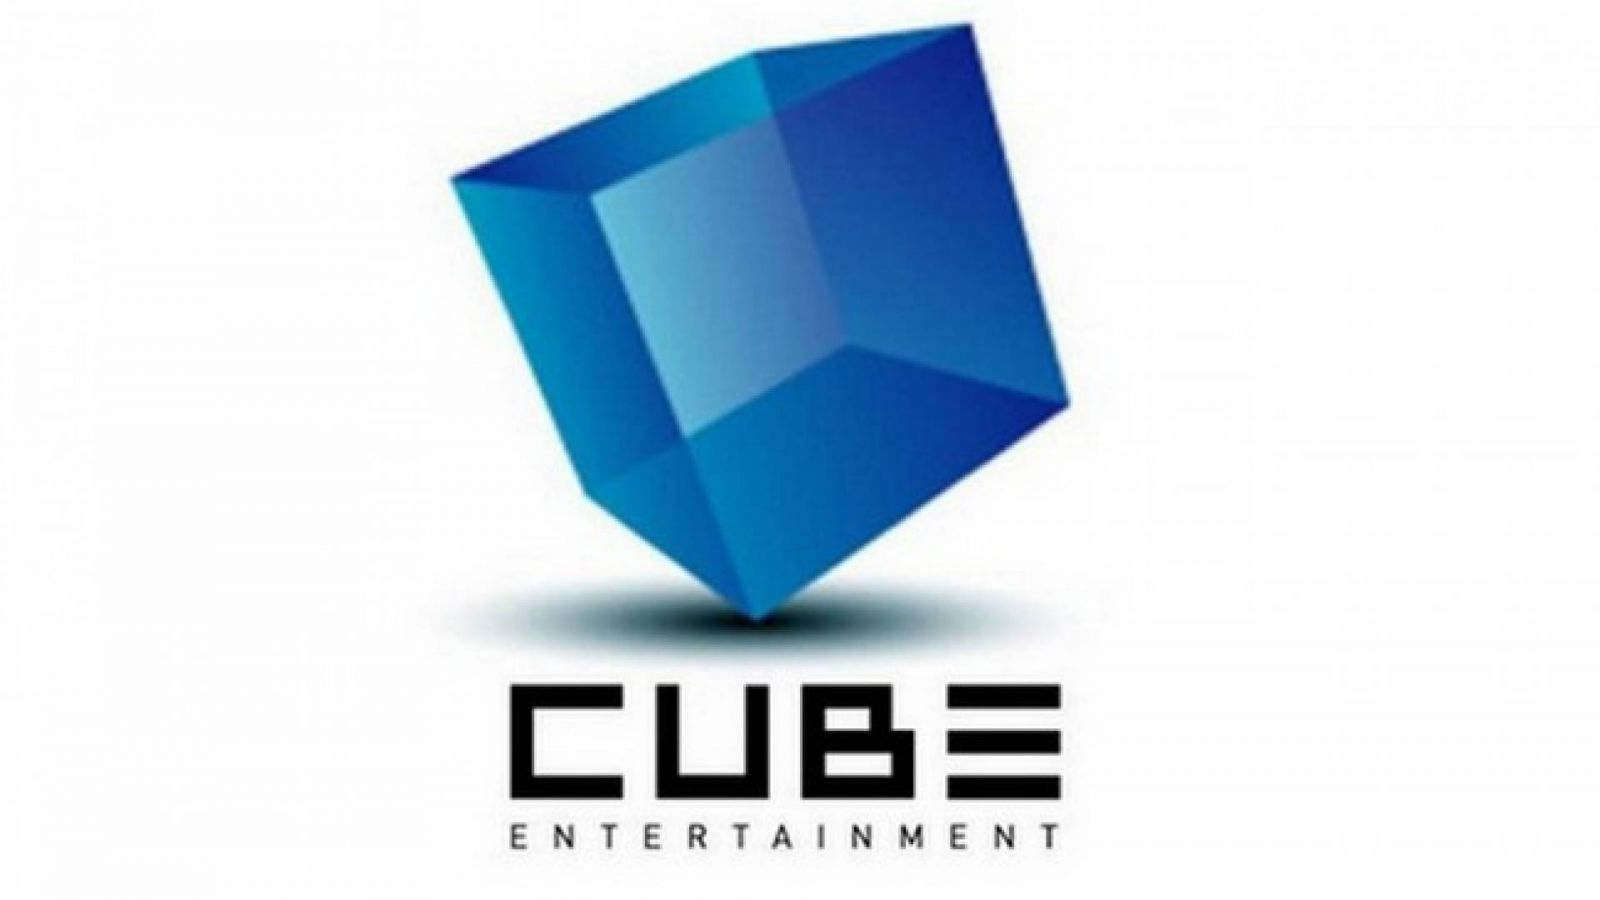 Teaser from Cube Entertainment © Cube Entertainment